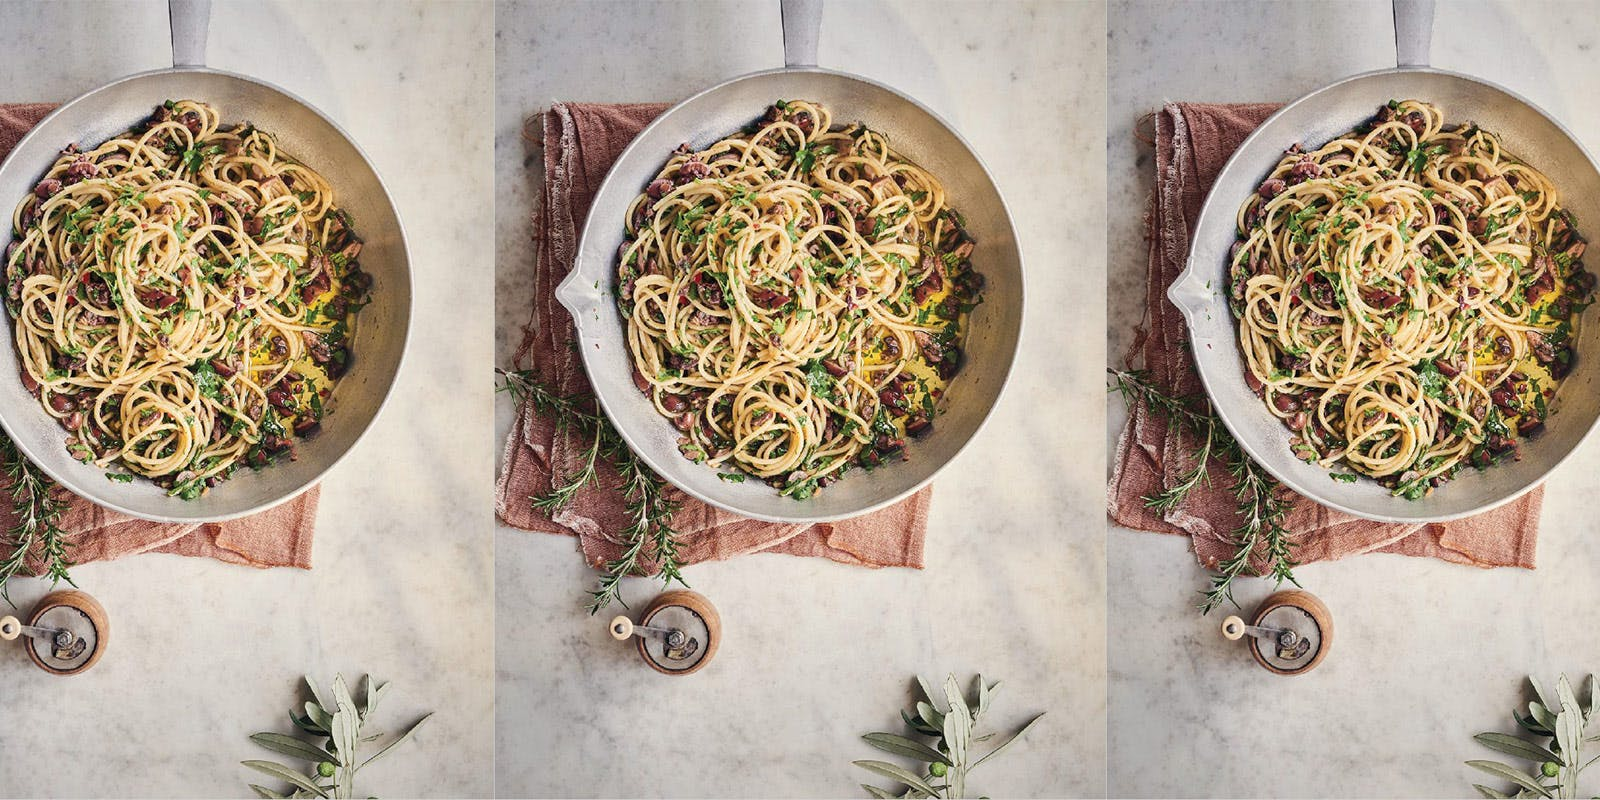 Spaghetti with anchovies and olives